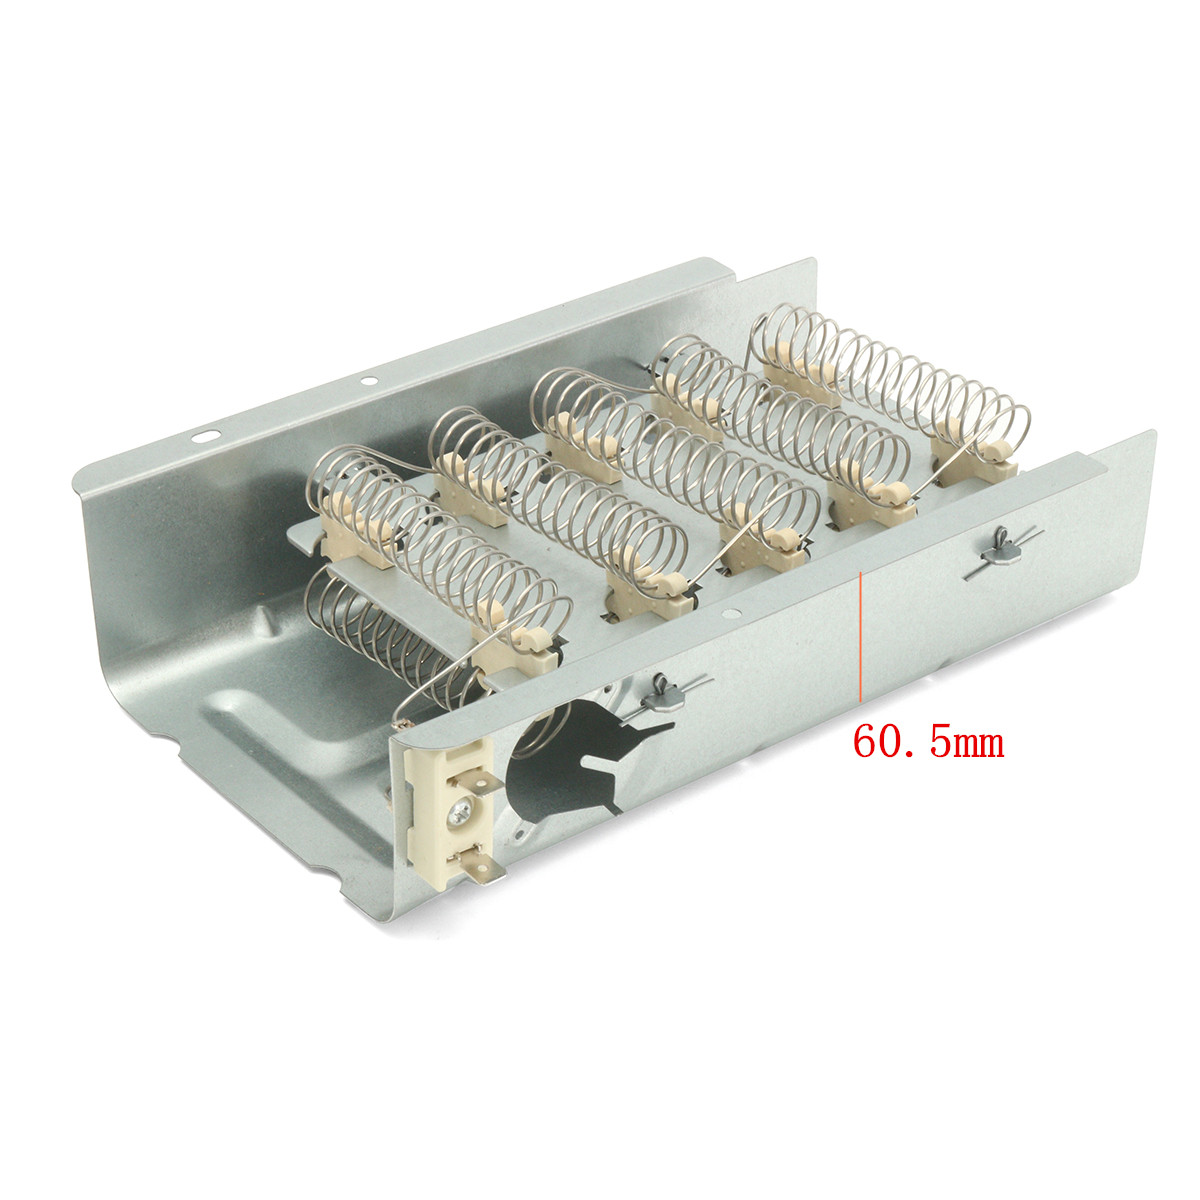 kenmore dryer operating thermostat cobalt oxide lewis diagram 3403585 heating element kit for whirlpool